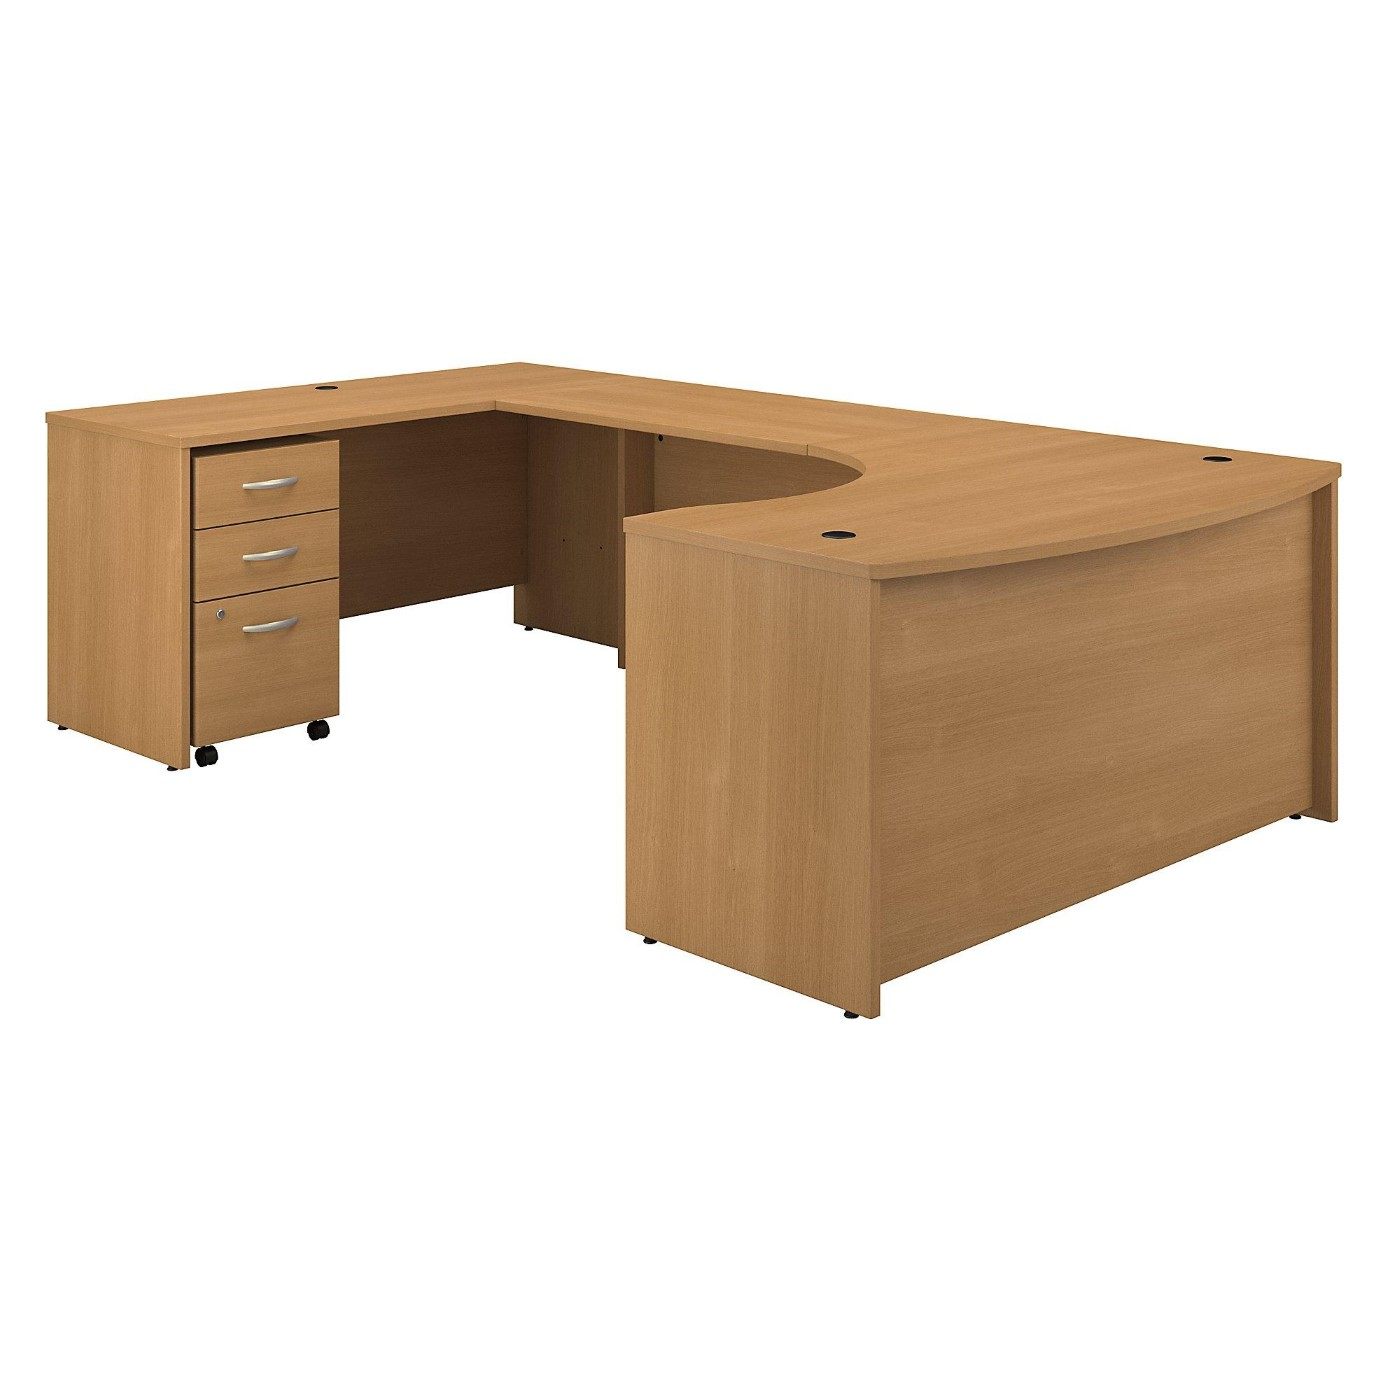 BUSH BUSINESS FURNITURE SERIES C 60W RIGHT HANDED BOW FRONT U SHAPED DESK WITH MOBILE FILE CABINET. FREE SHIPPING  VIDEO BELOW.  SALE DEDUCT 10% MORE ENTER '10percent' IN COUPON CODE BOX WHILE CHECKING OUT.